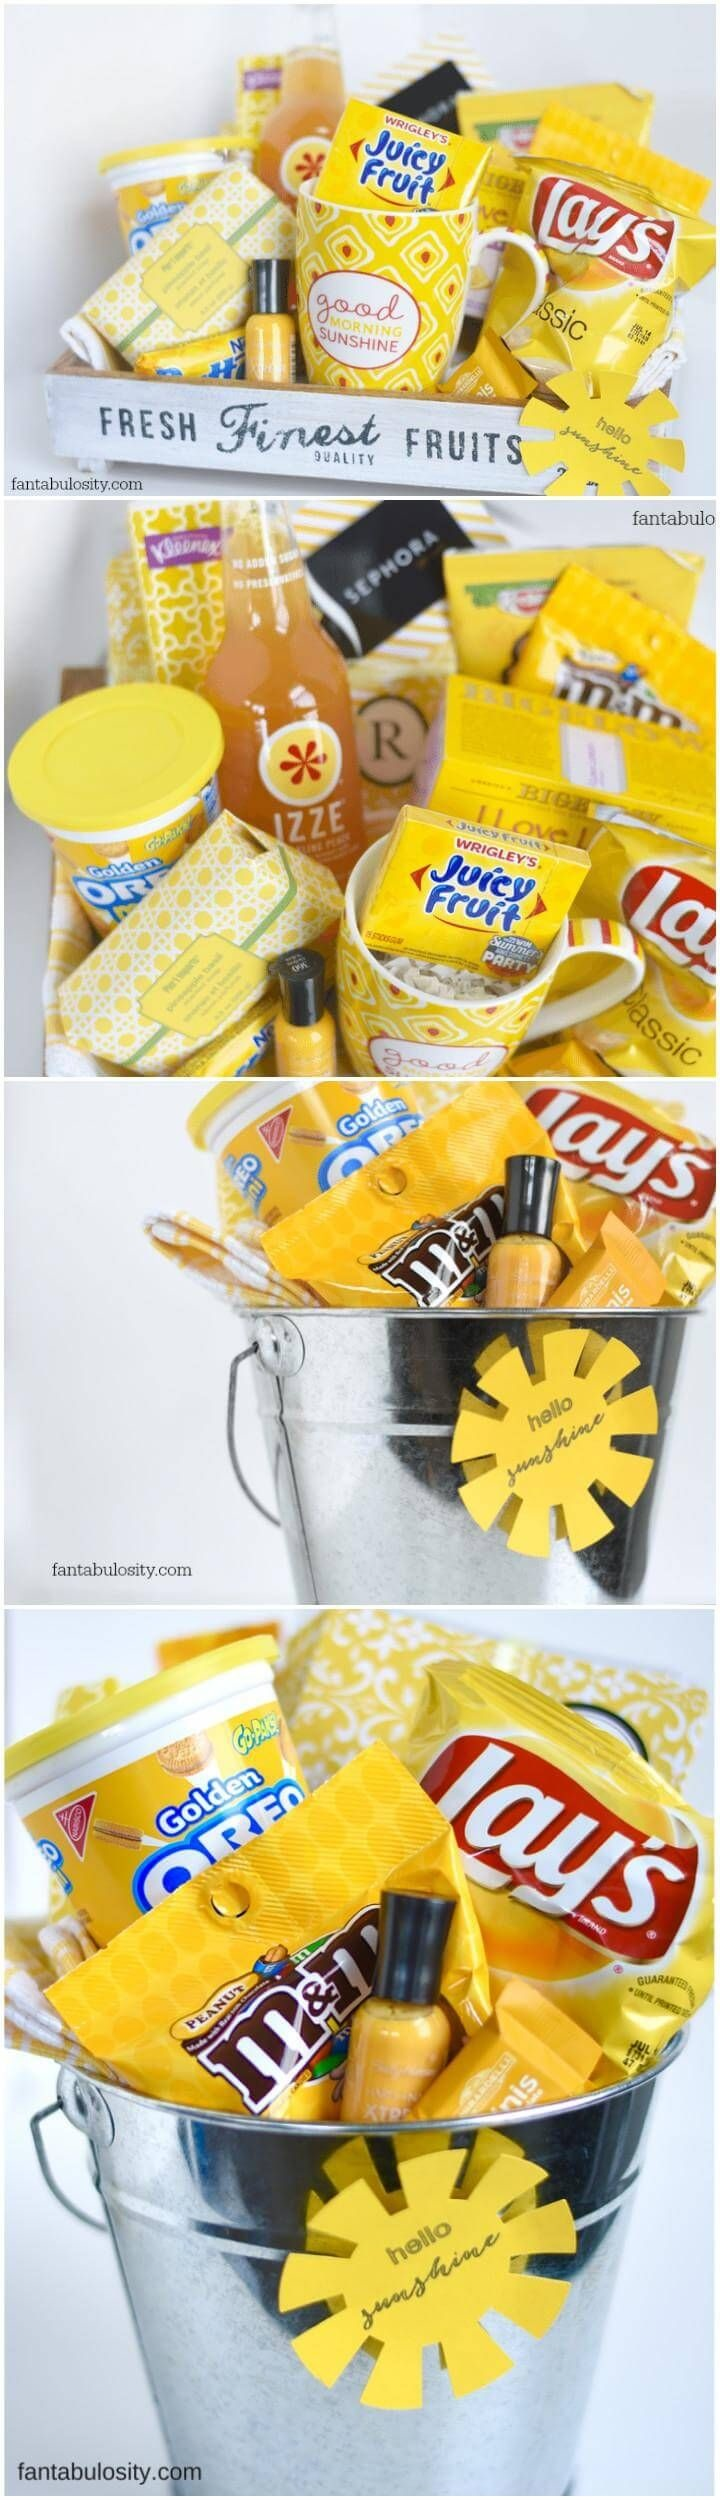 70+ Inexpensive DIY Gift Basket Ideas – DIY Gifts - diy gift baskets| HappyShappy - India's Best Ideas, Products & Horoscopes #boyfriendgiftbasket